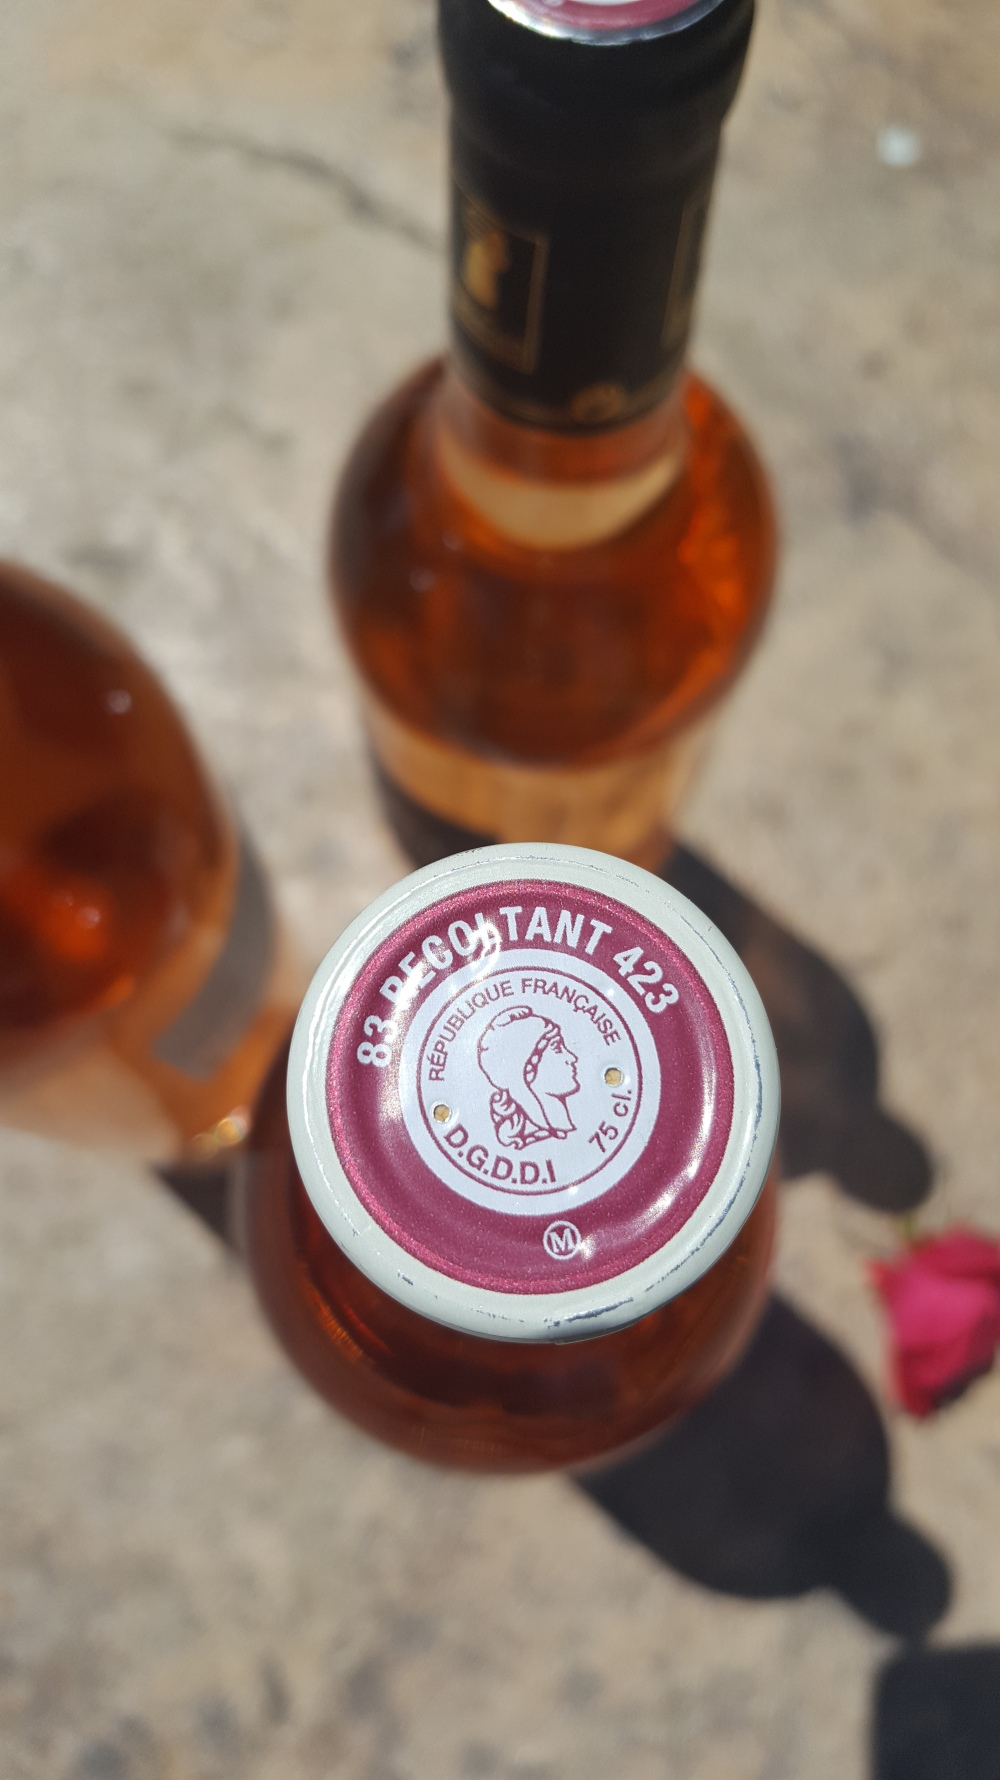 Rosé from Provence France